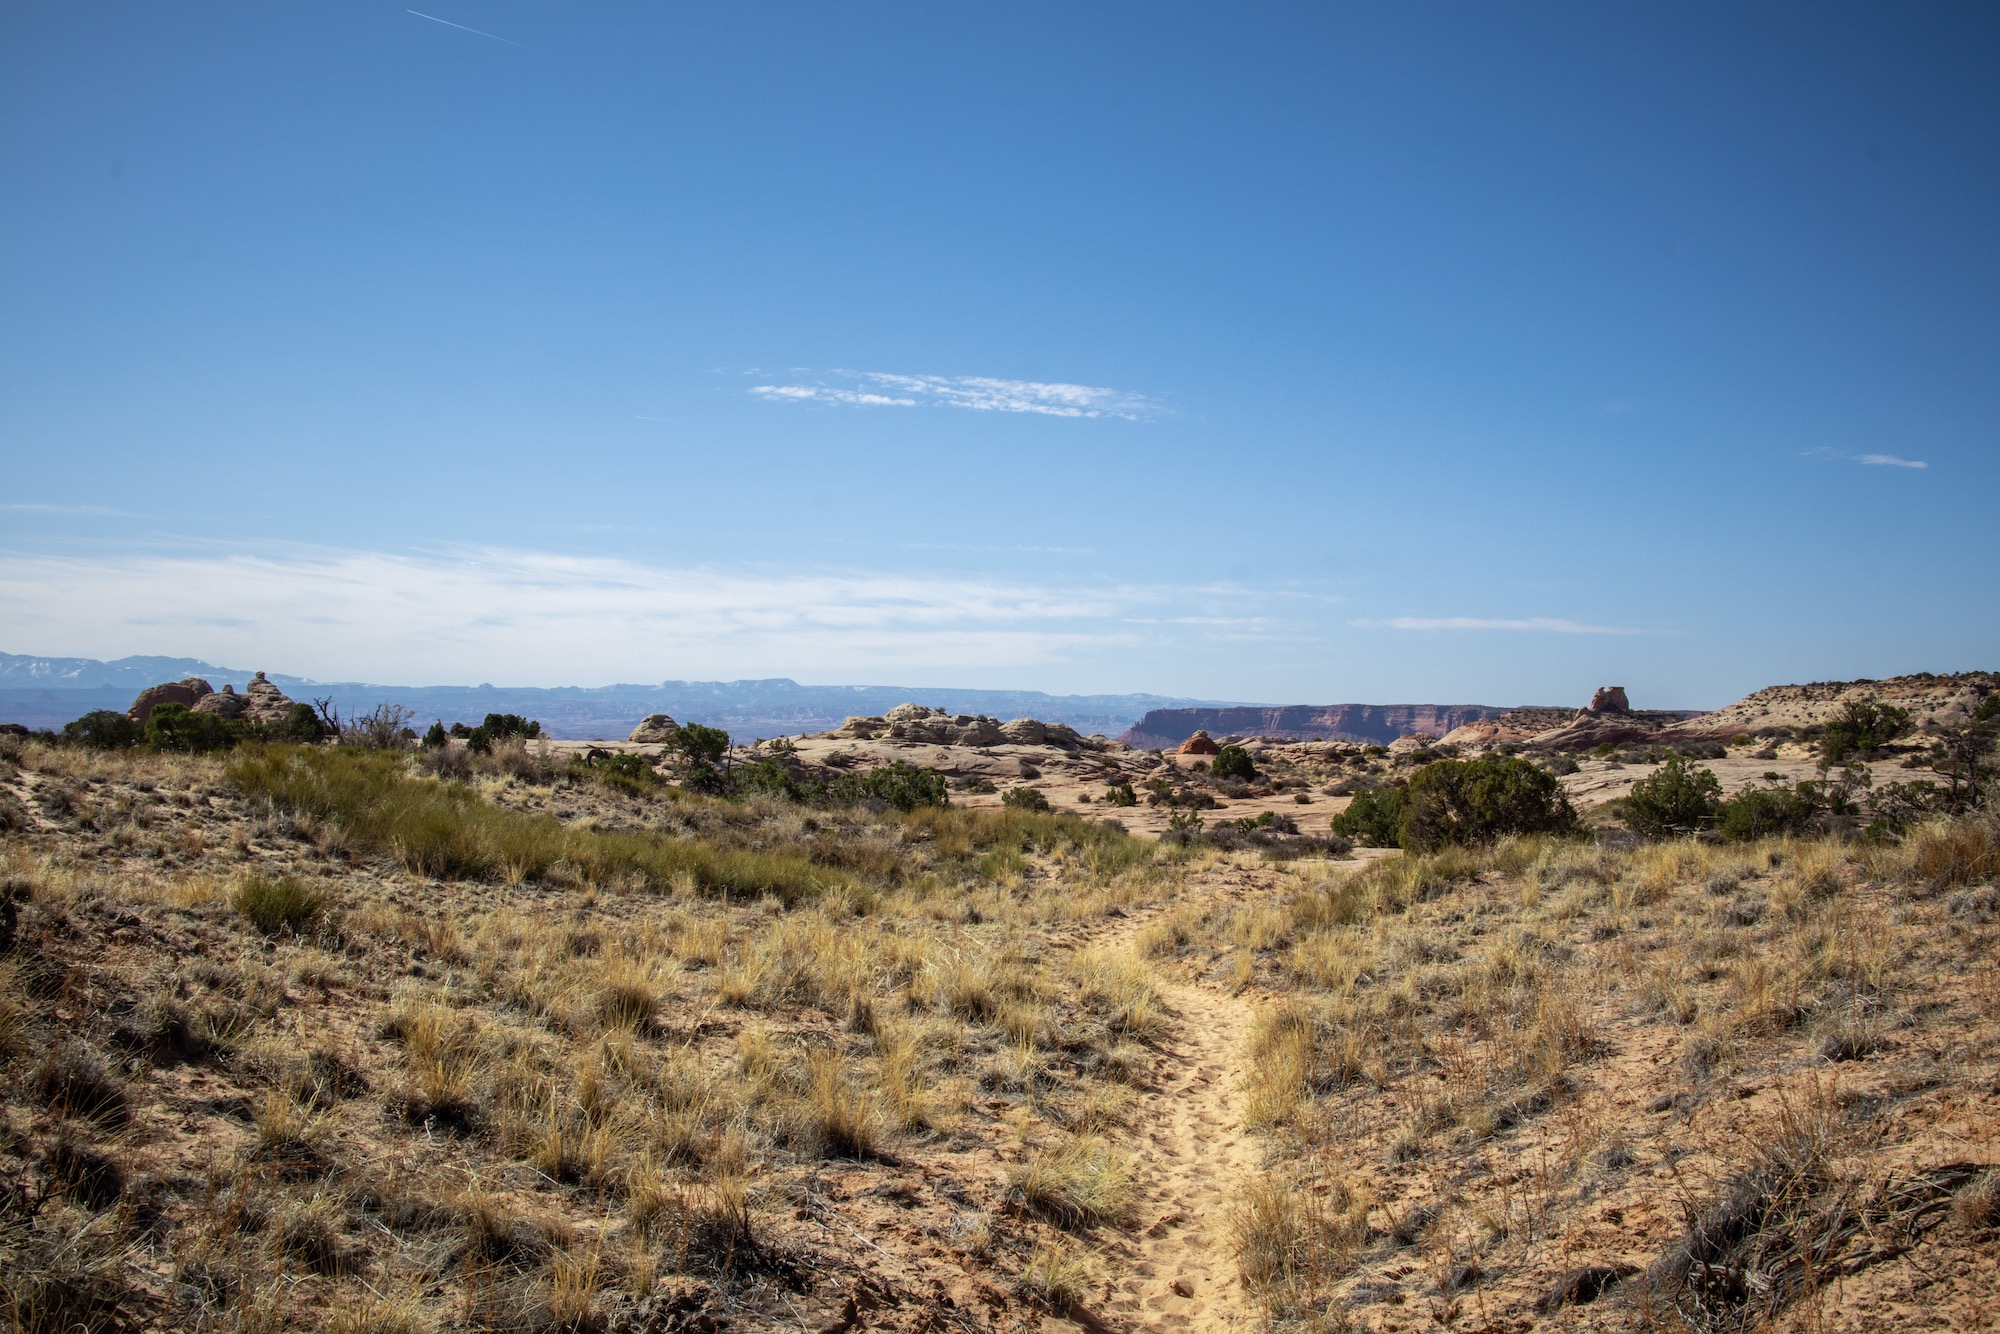 The first 1.5 miles of the Lathrop Trail are flat grasslands, but then you see the edge in the distance...